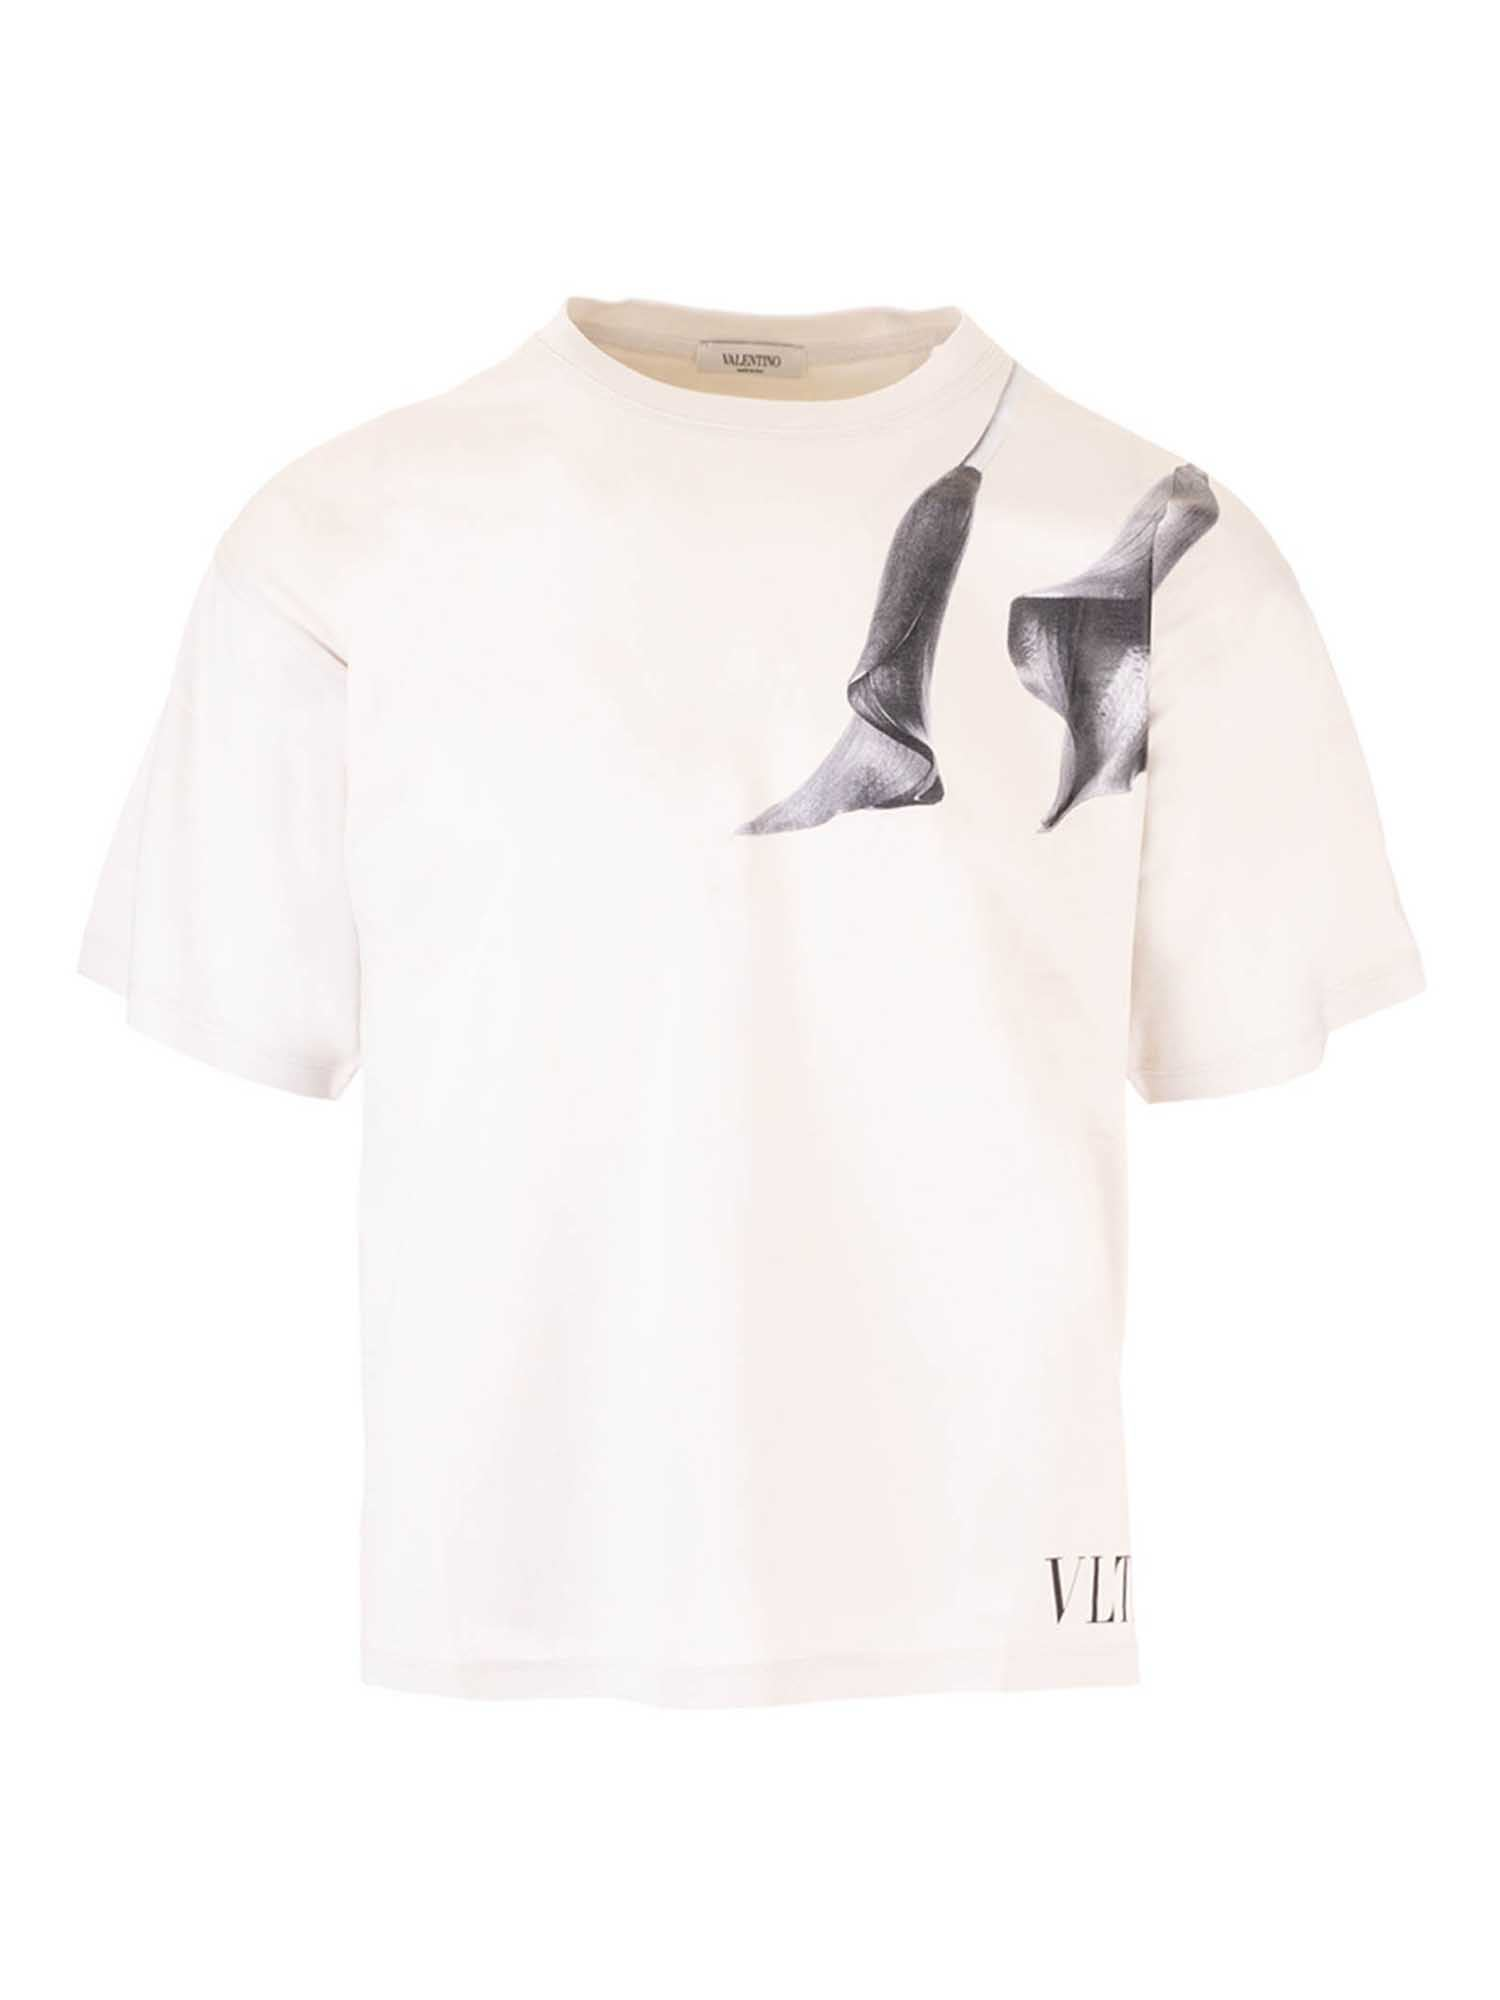 Valentino PRINTED T-SHIRT IN LIGHT BEIGE